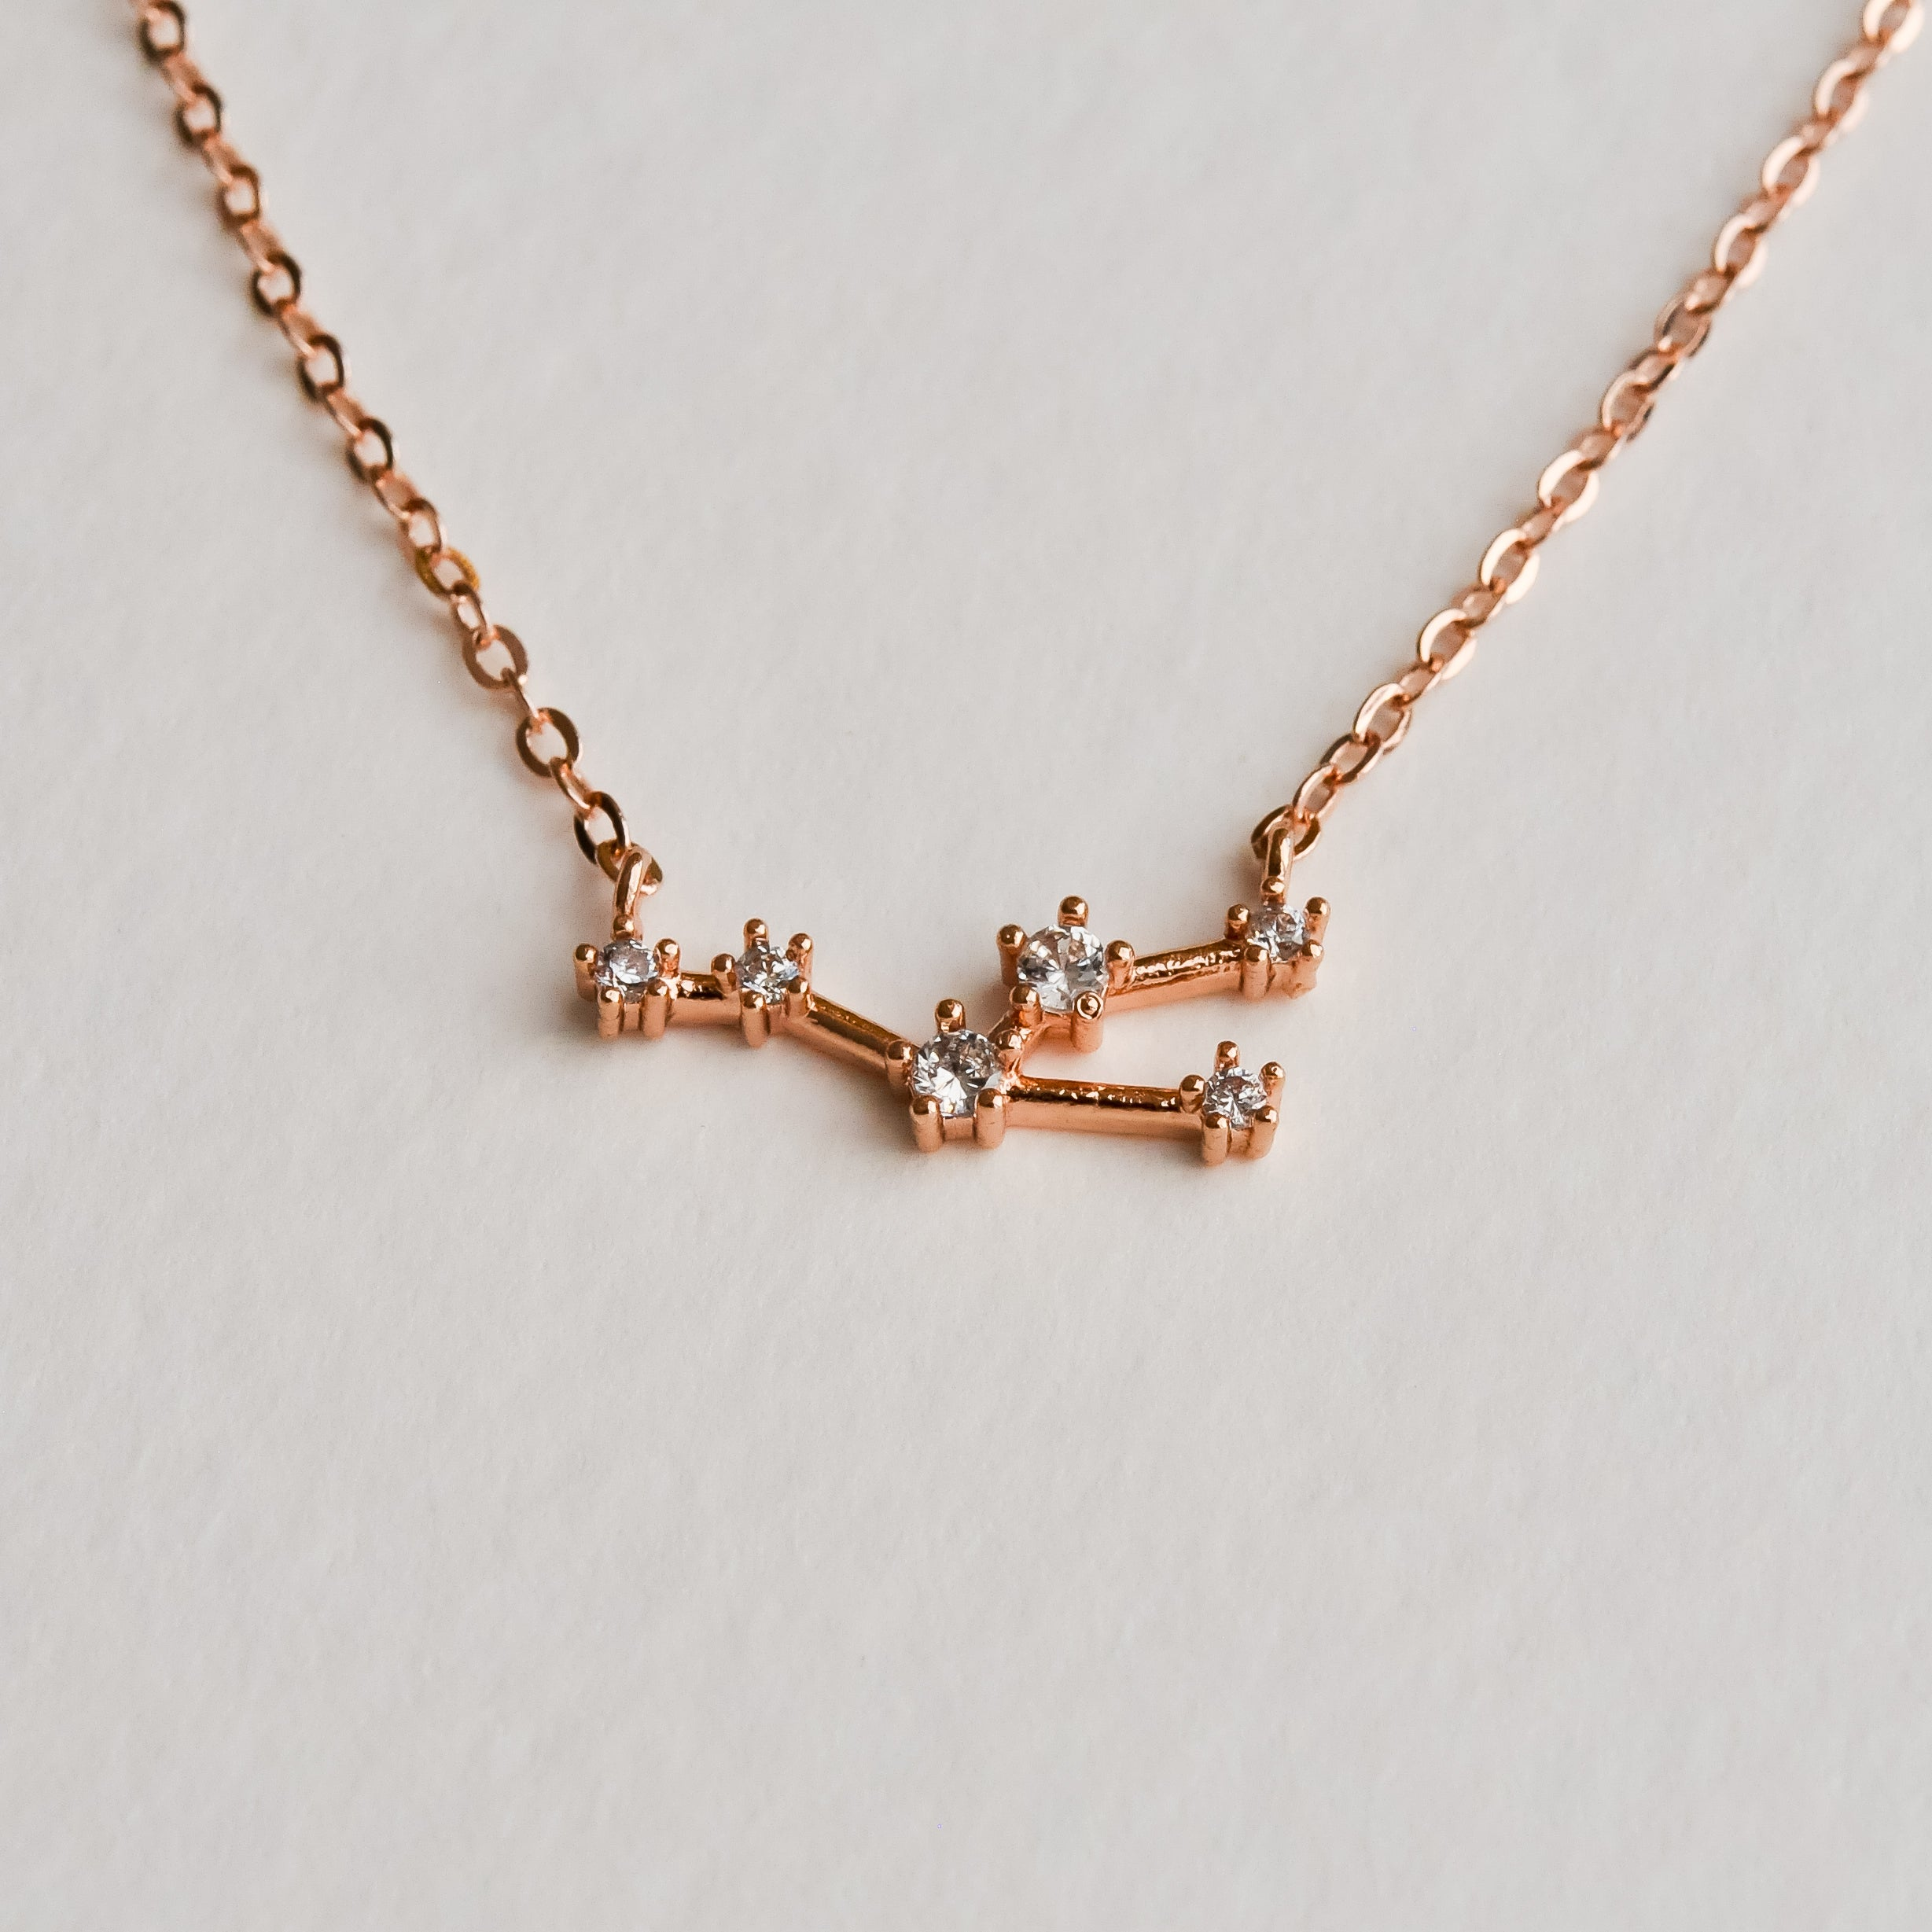 Taurus Constellation Necklace - Aloraflora Jewelry